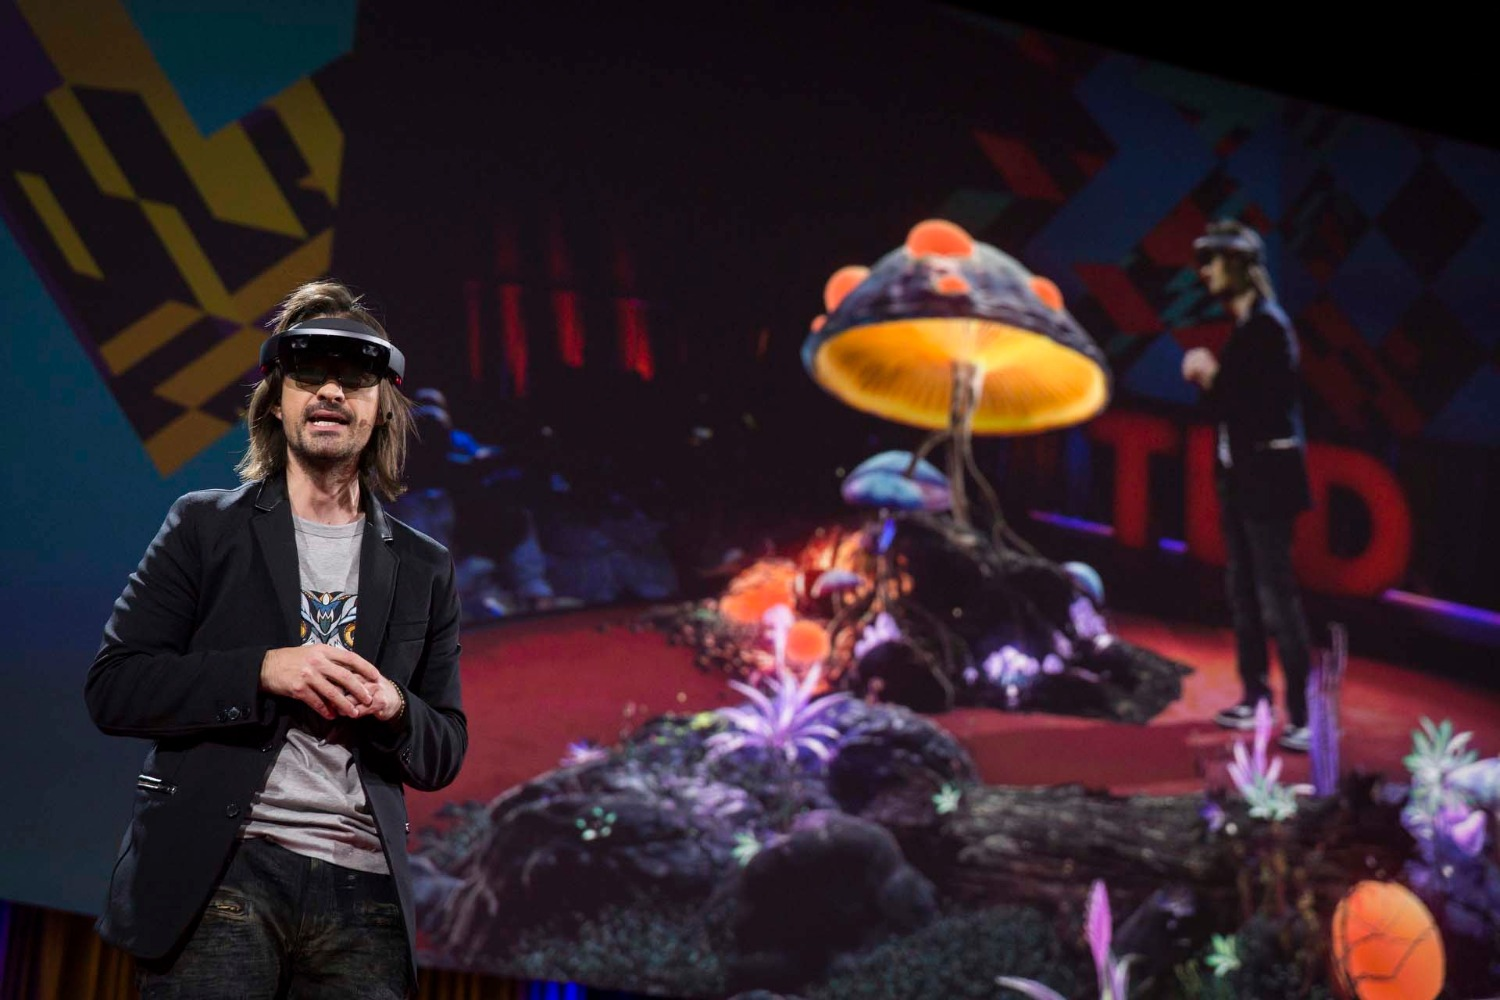 Alex Kipman speaks at TED2016 - Dream, February 15-19, 2016, Vancouver Convention Center, Vancouver, Canada. Photo: Bret Hartman / TED